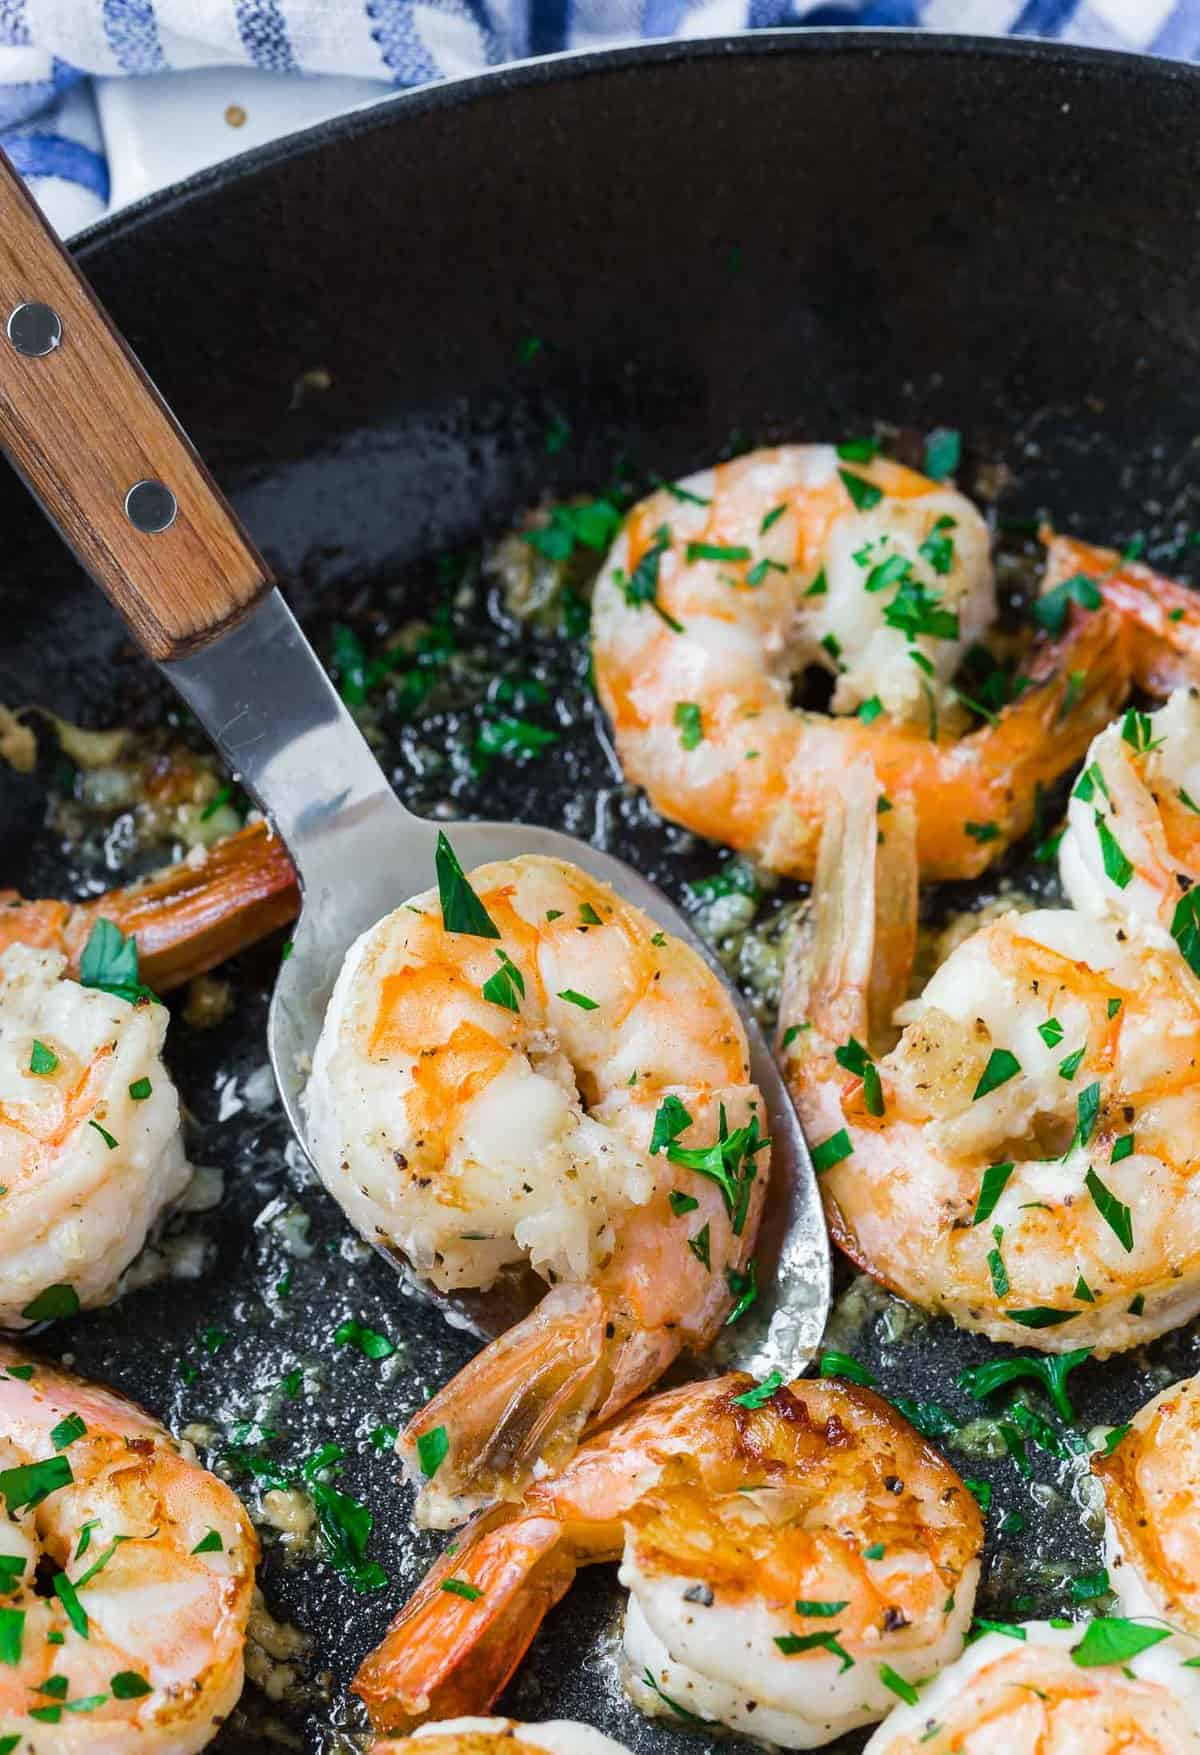 Shrimp on a serving spoon.